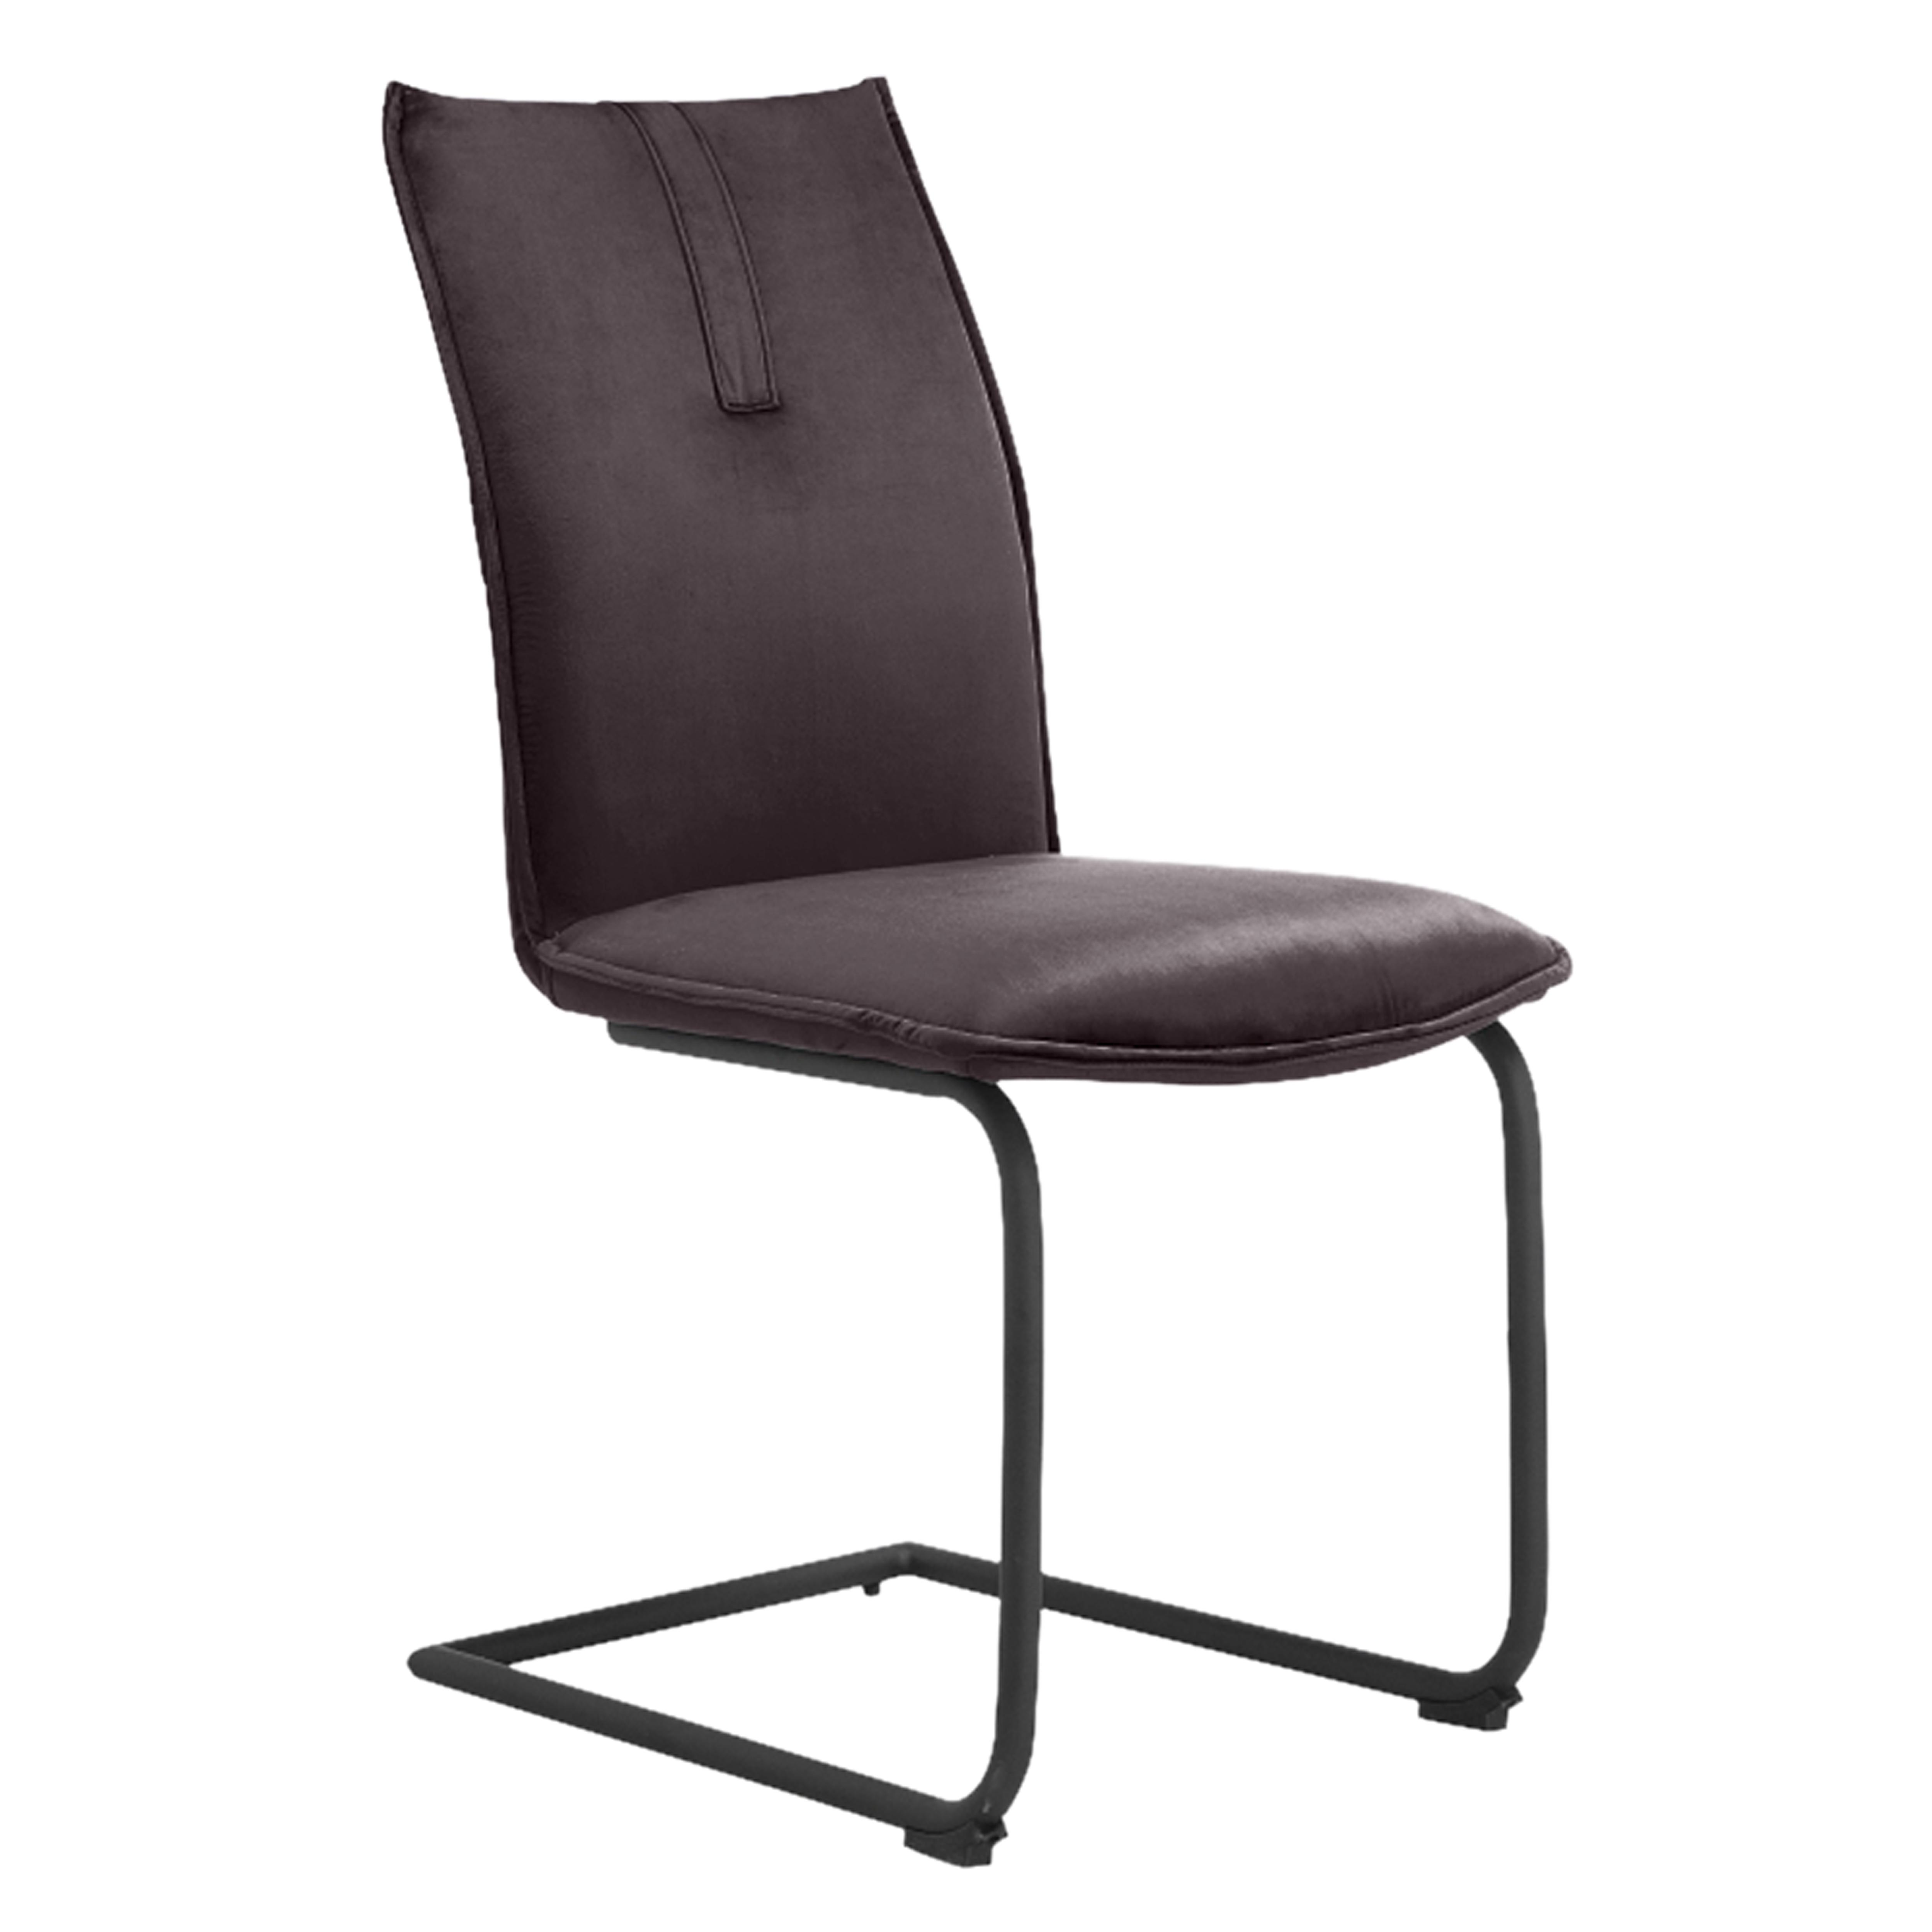 Curvare velvet cantilever dining chair grey with black leg